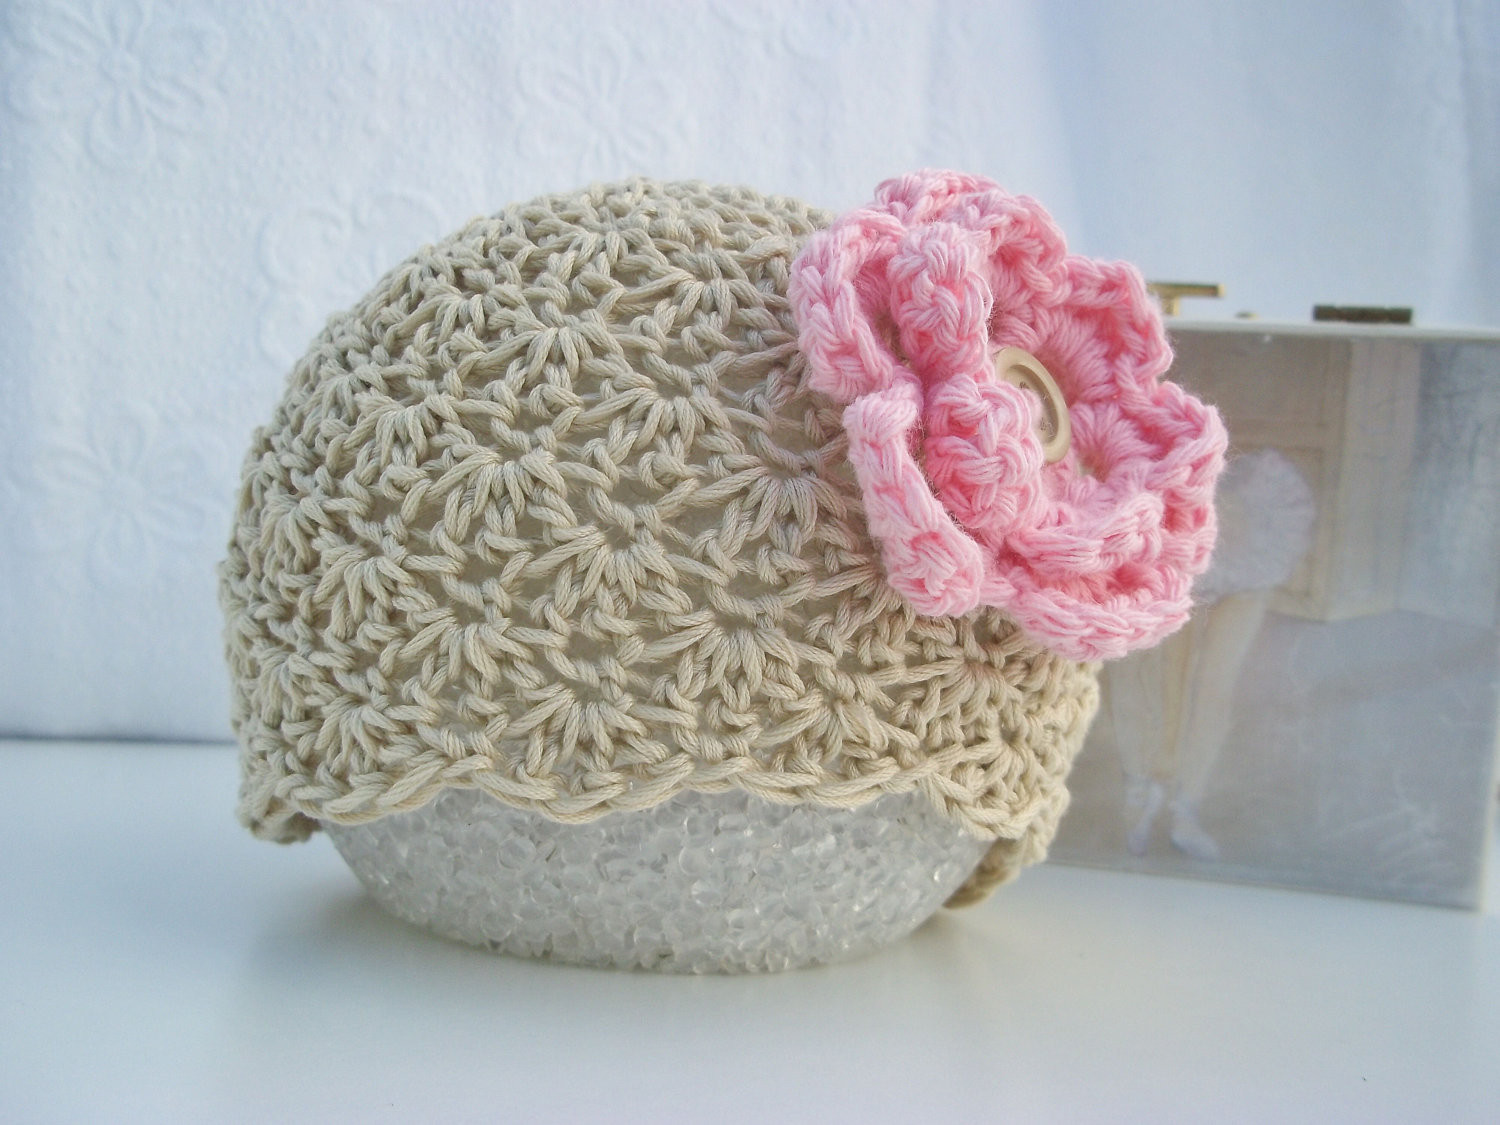 Crochet Girl Hat Lovely Crochet Baby Hat Baby Girl Hat Newborn Baby Hat Of Superb 47 Pics Crochet Girl Hat